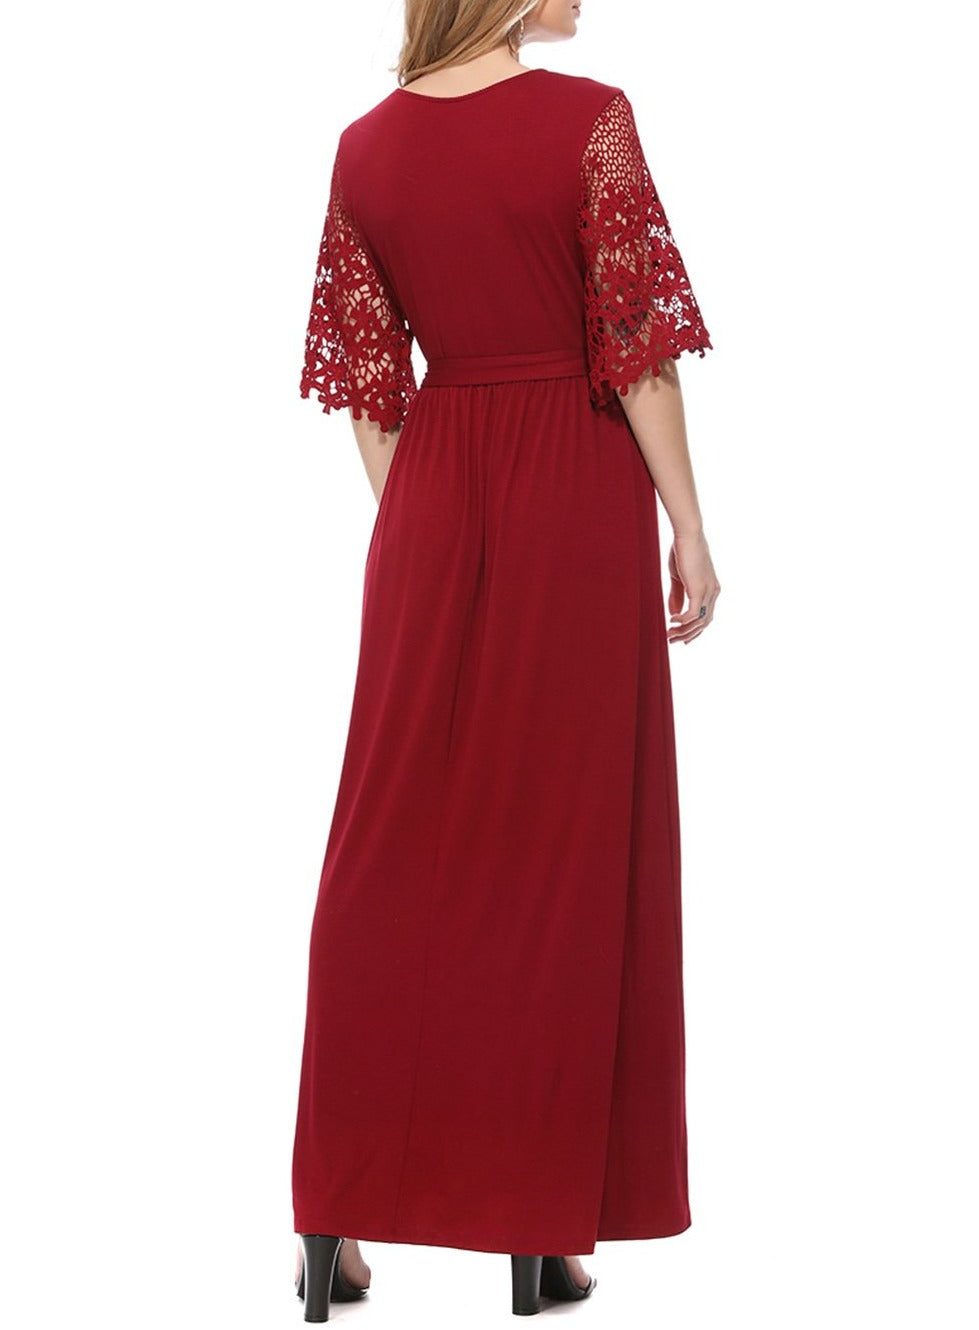 Red Floral Lace Half Sleeve Wrap V Neck Party Long Maxi Dress